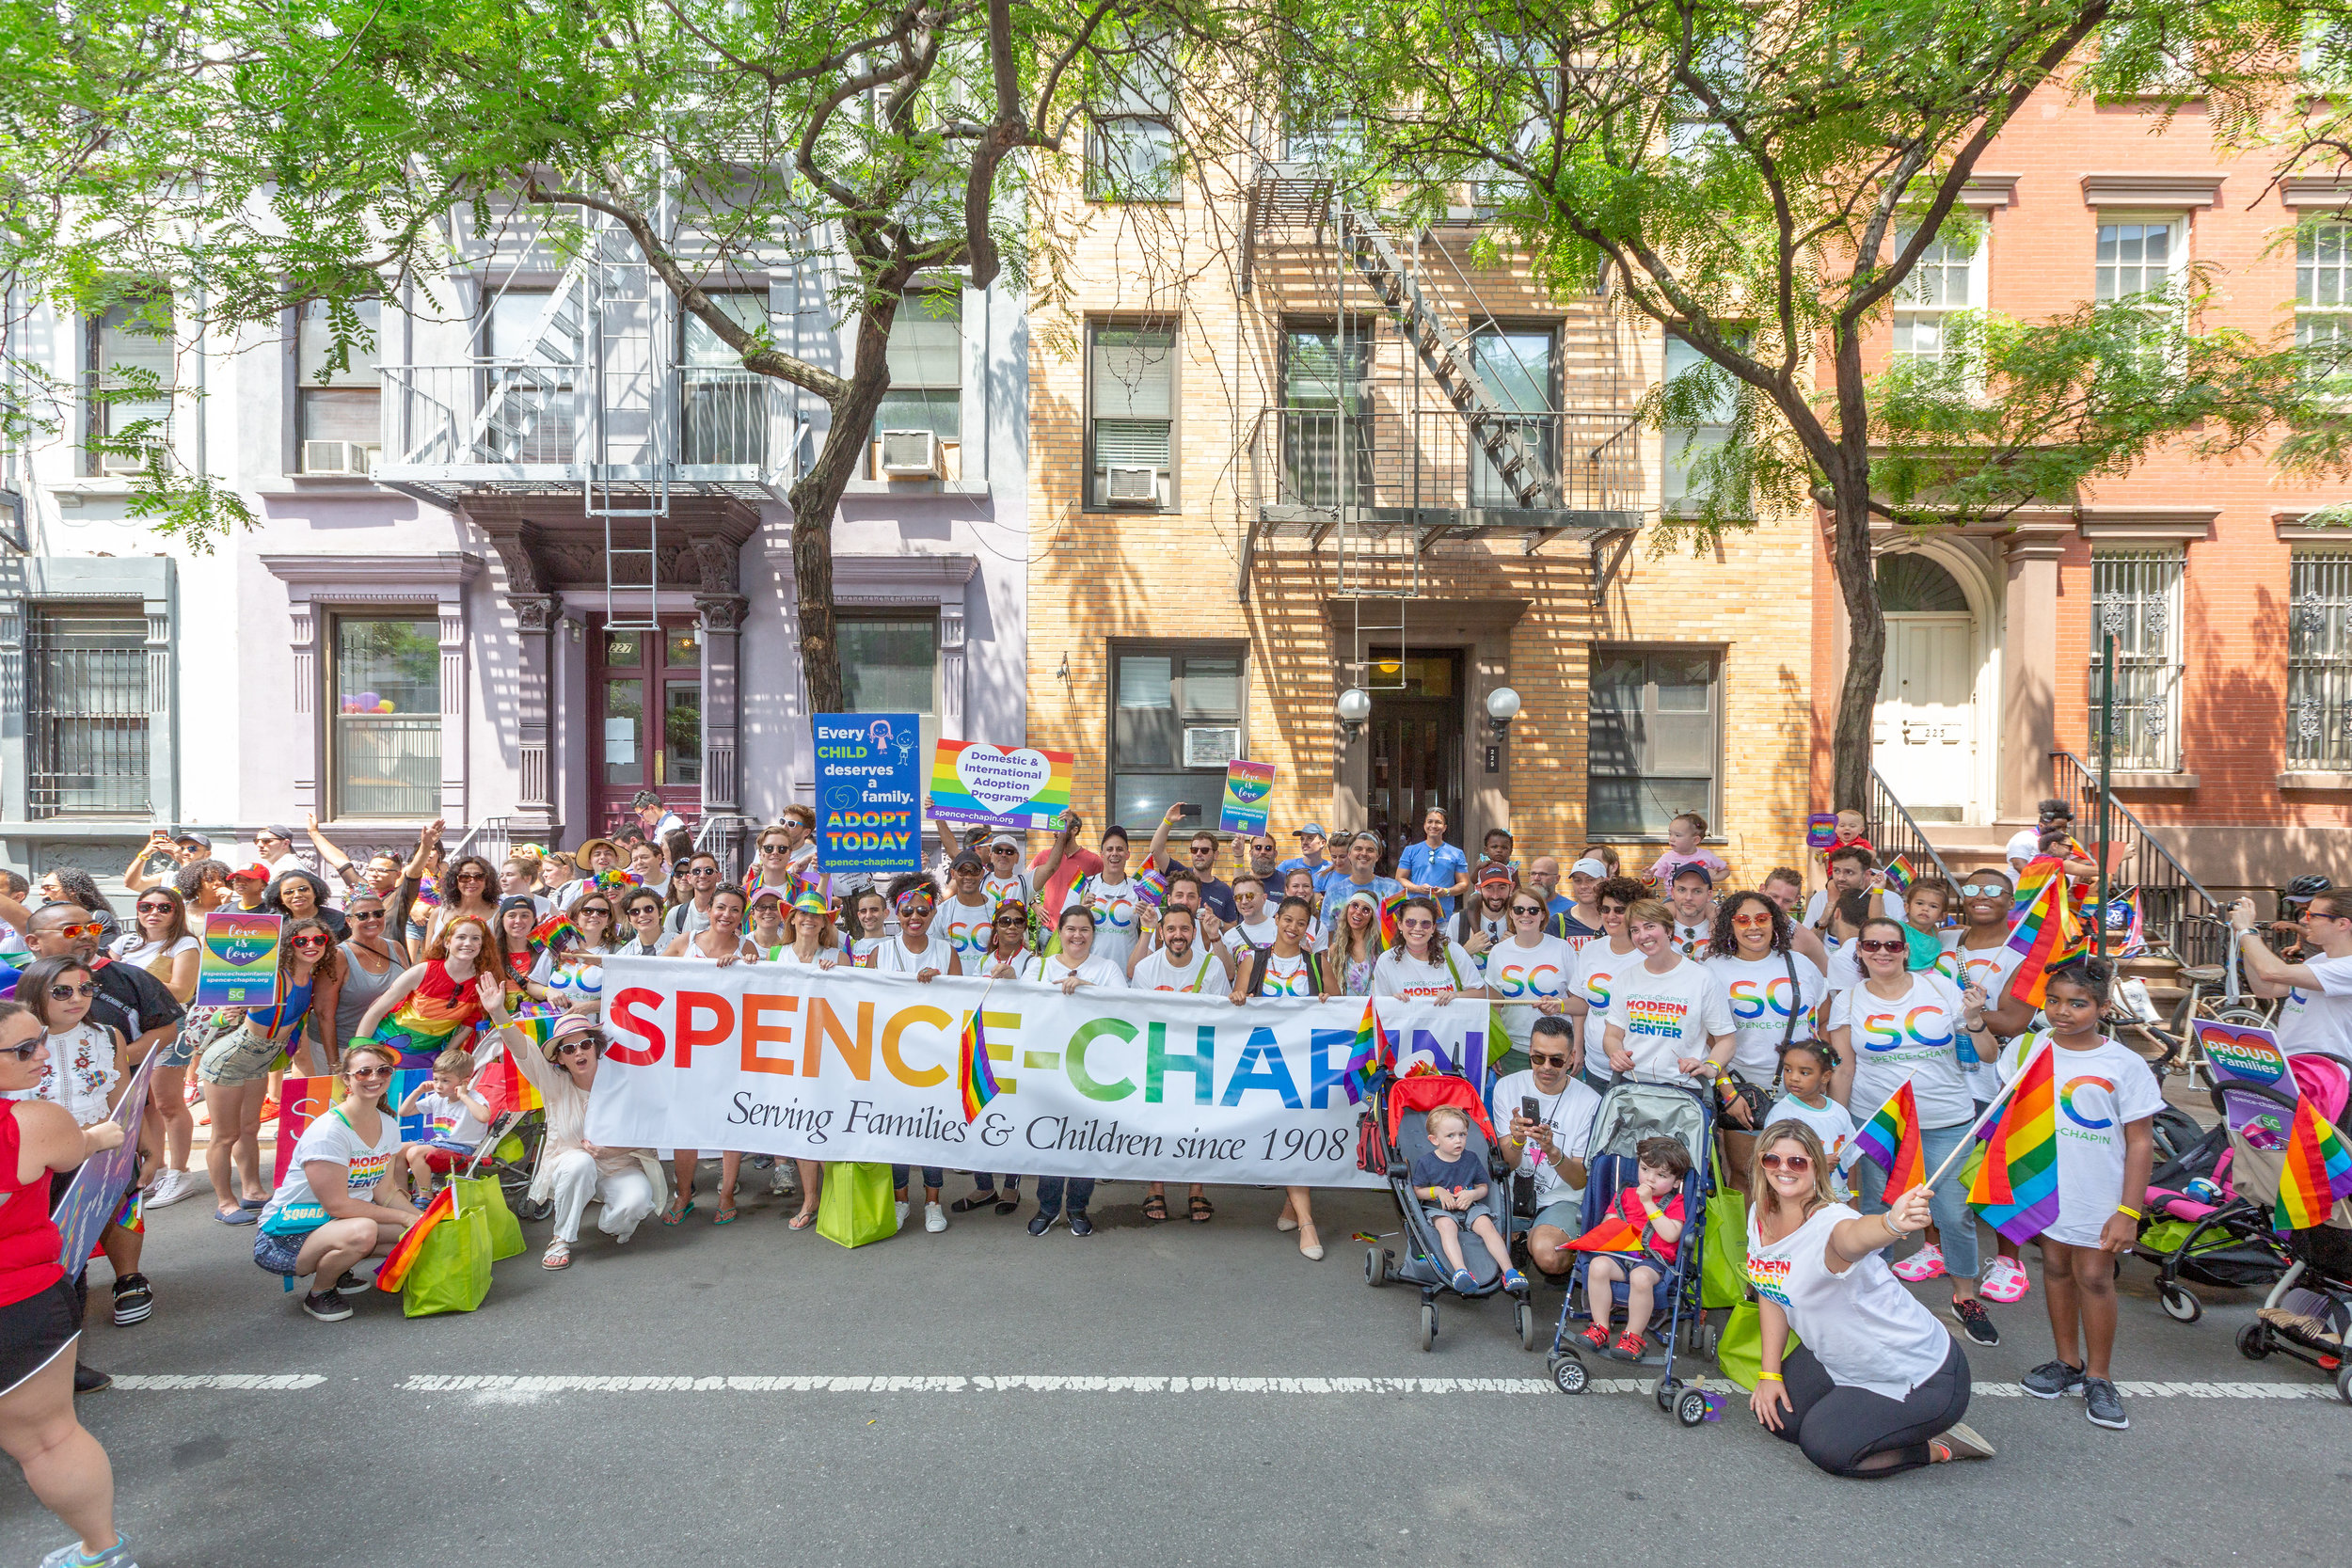 Spence-Chapin 2018 NYC Pride March Pictures - Sunday, June 24, 2018West Village, NYC